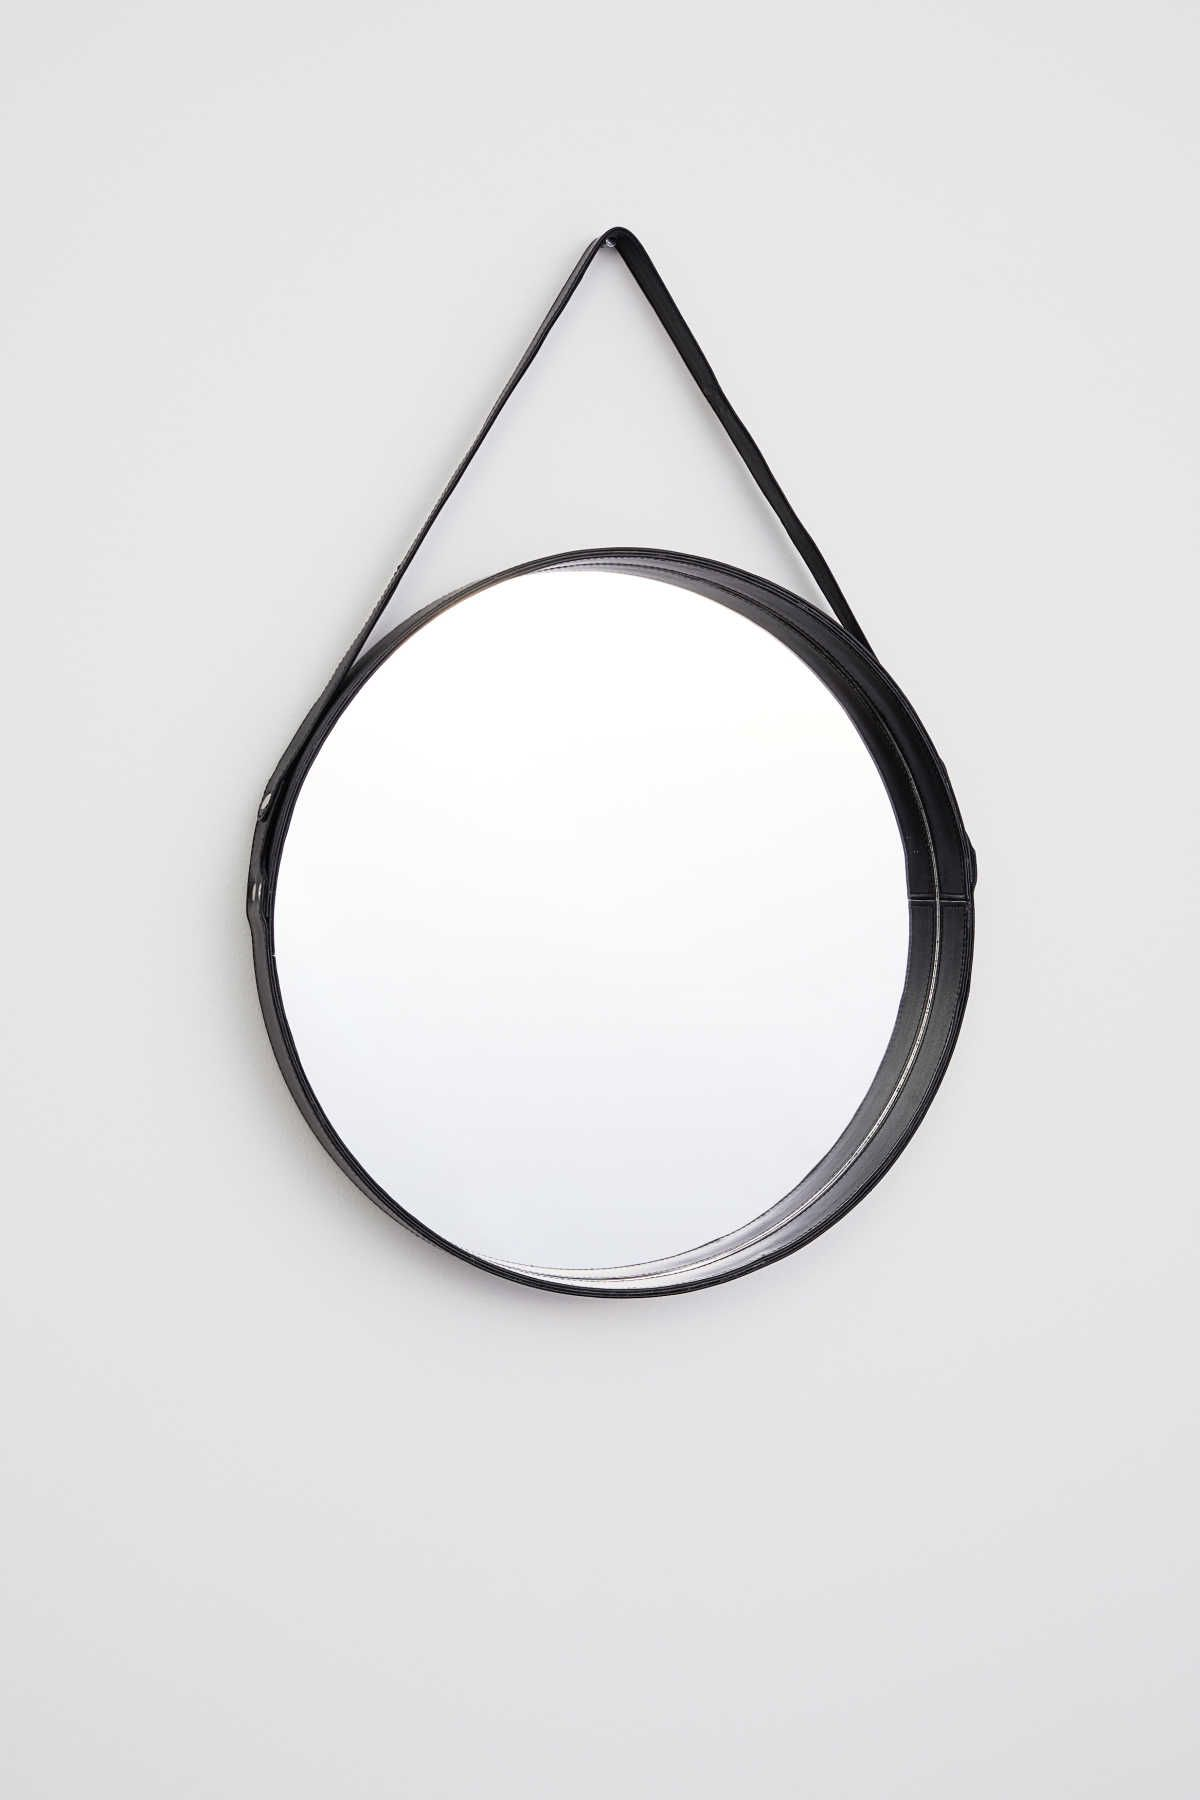 Black Large Round Mirror With A Leather Frame Loop At Back For Hanging Screws Not Included Diamete Leather Mirror Round Mirror Bathroom Black Round Mirror